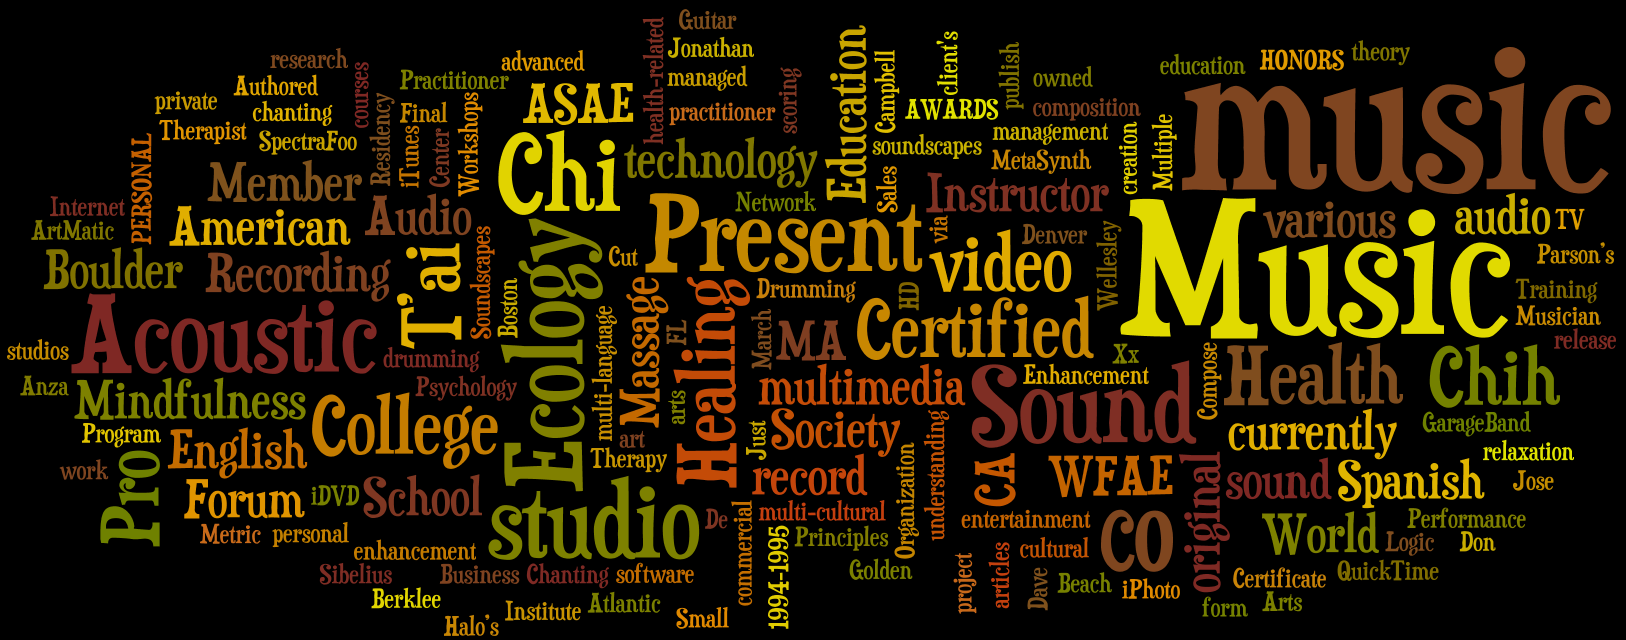 Wordle.net result with my music, art skills...